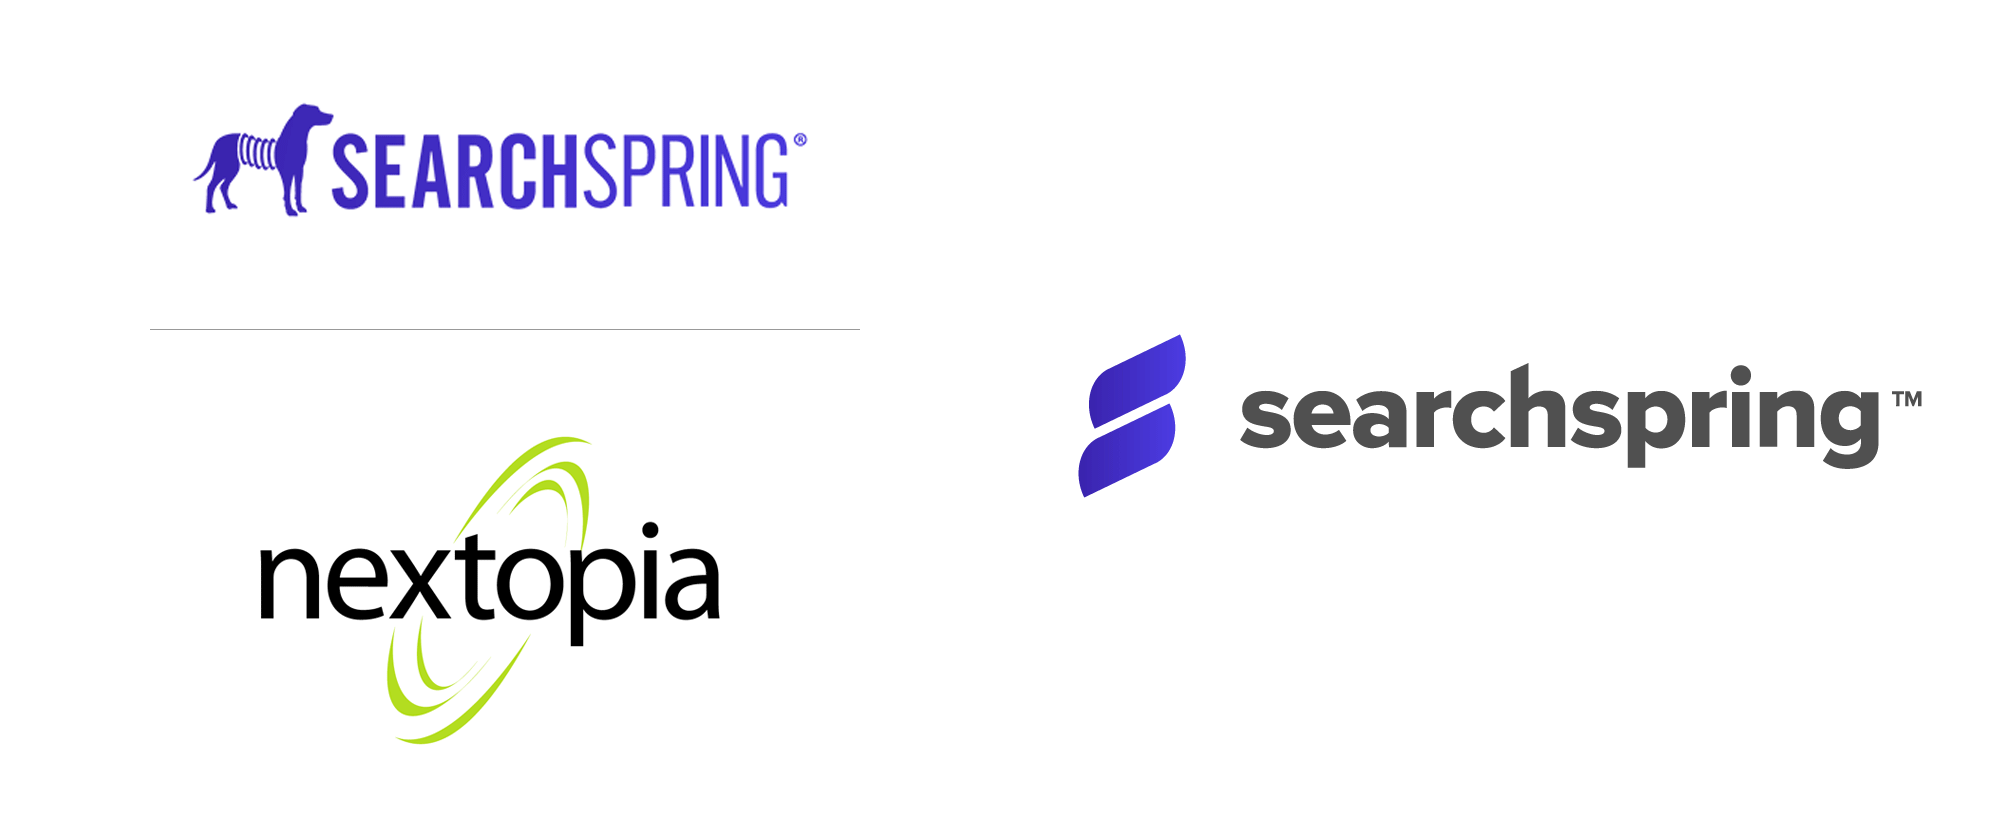 New Logo for Searchspring